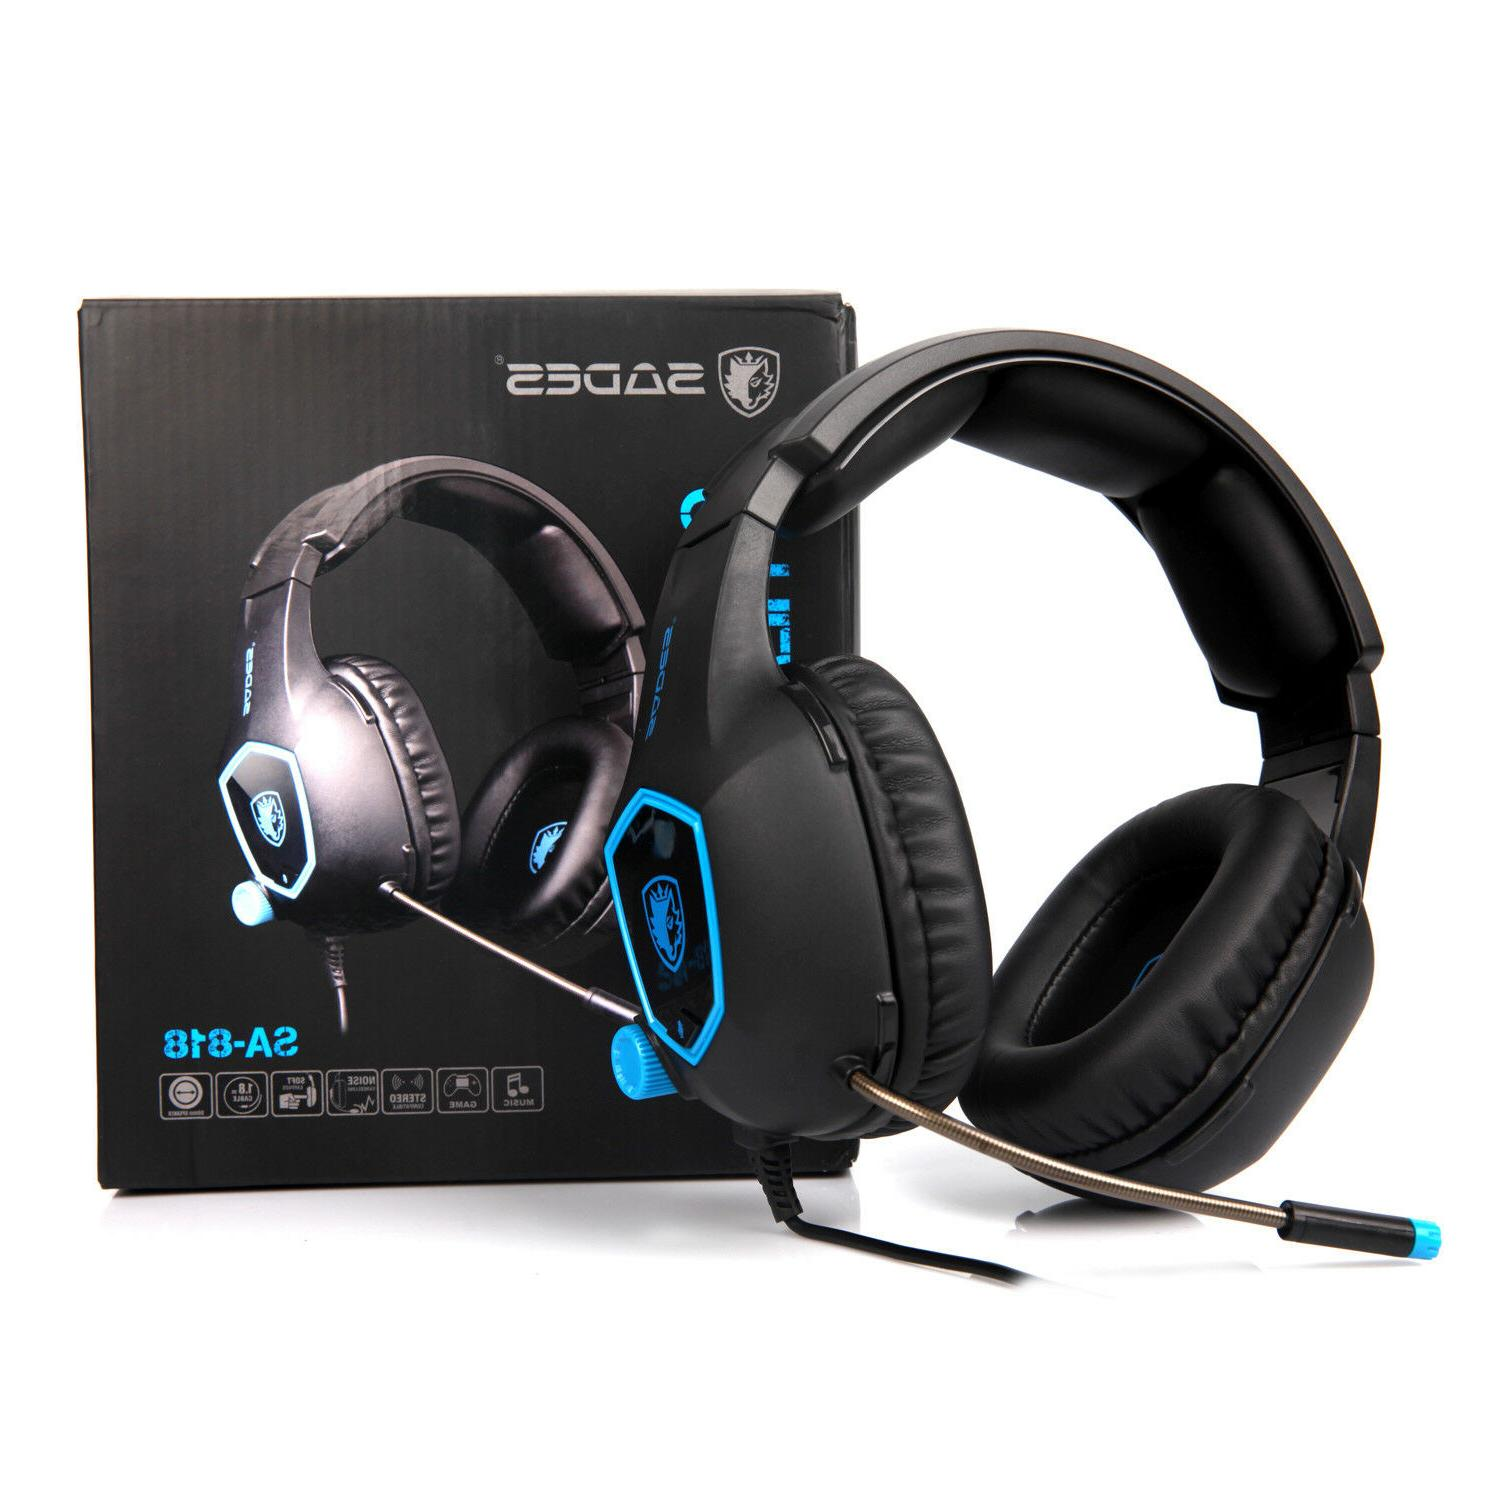 Sades Gaming Headset Stereo Headphone 3.5mm W/Mic For PS4 Latop